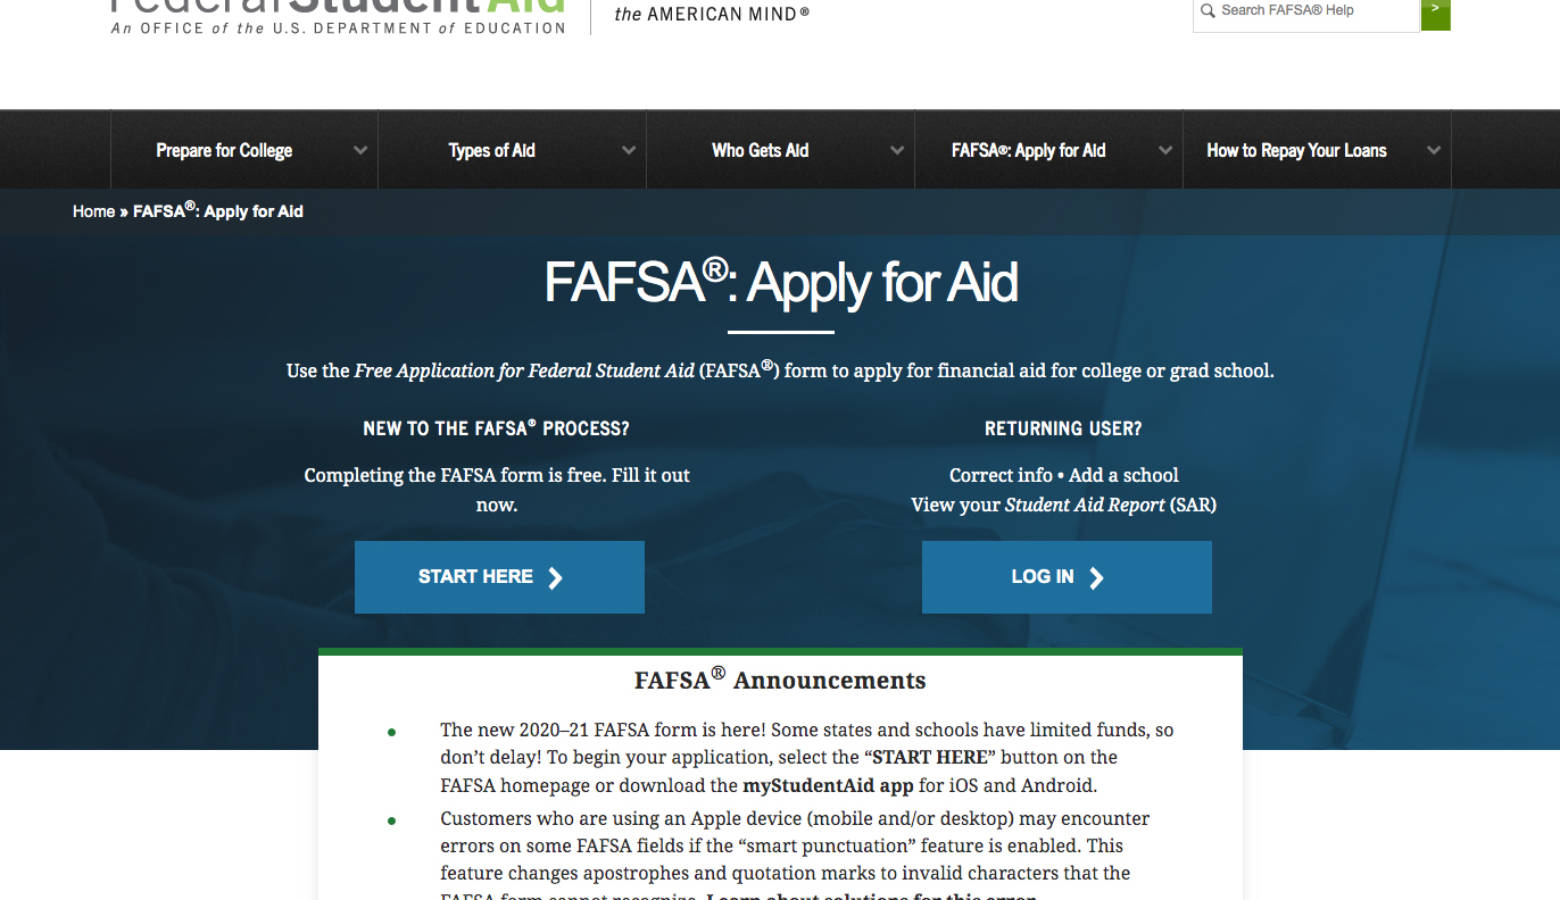 (studentaid.ed.gov/sa/fafsa)